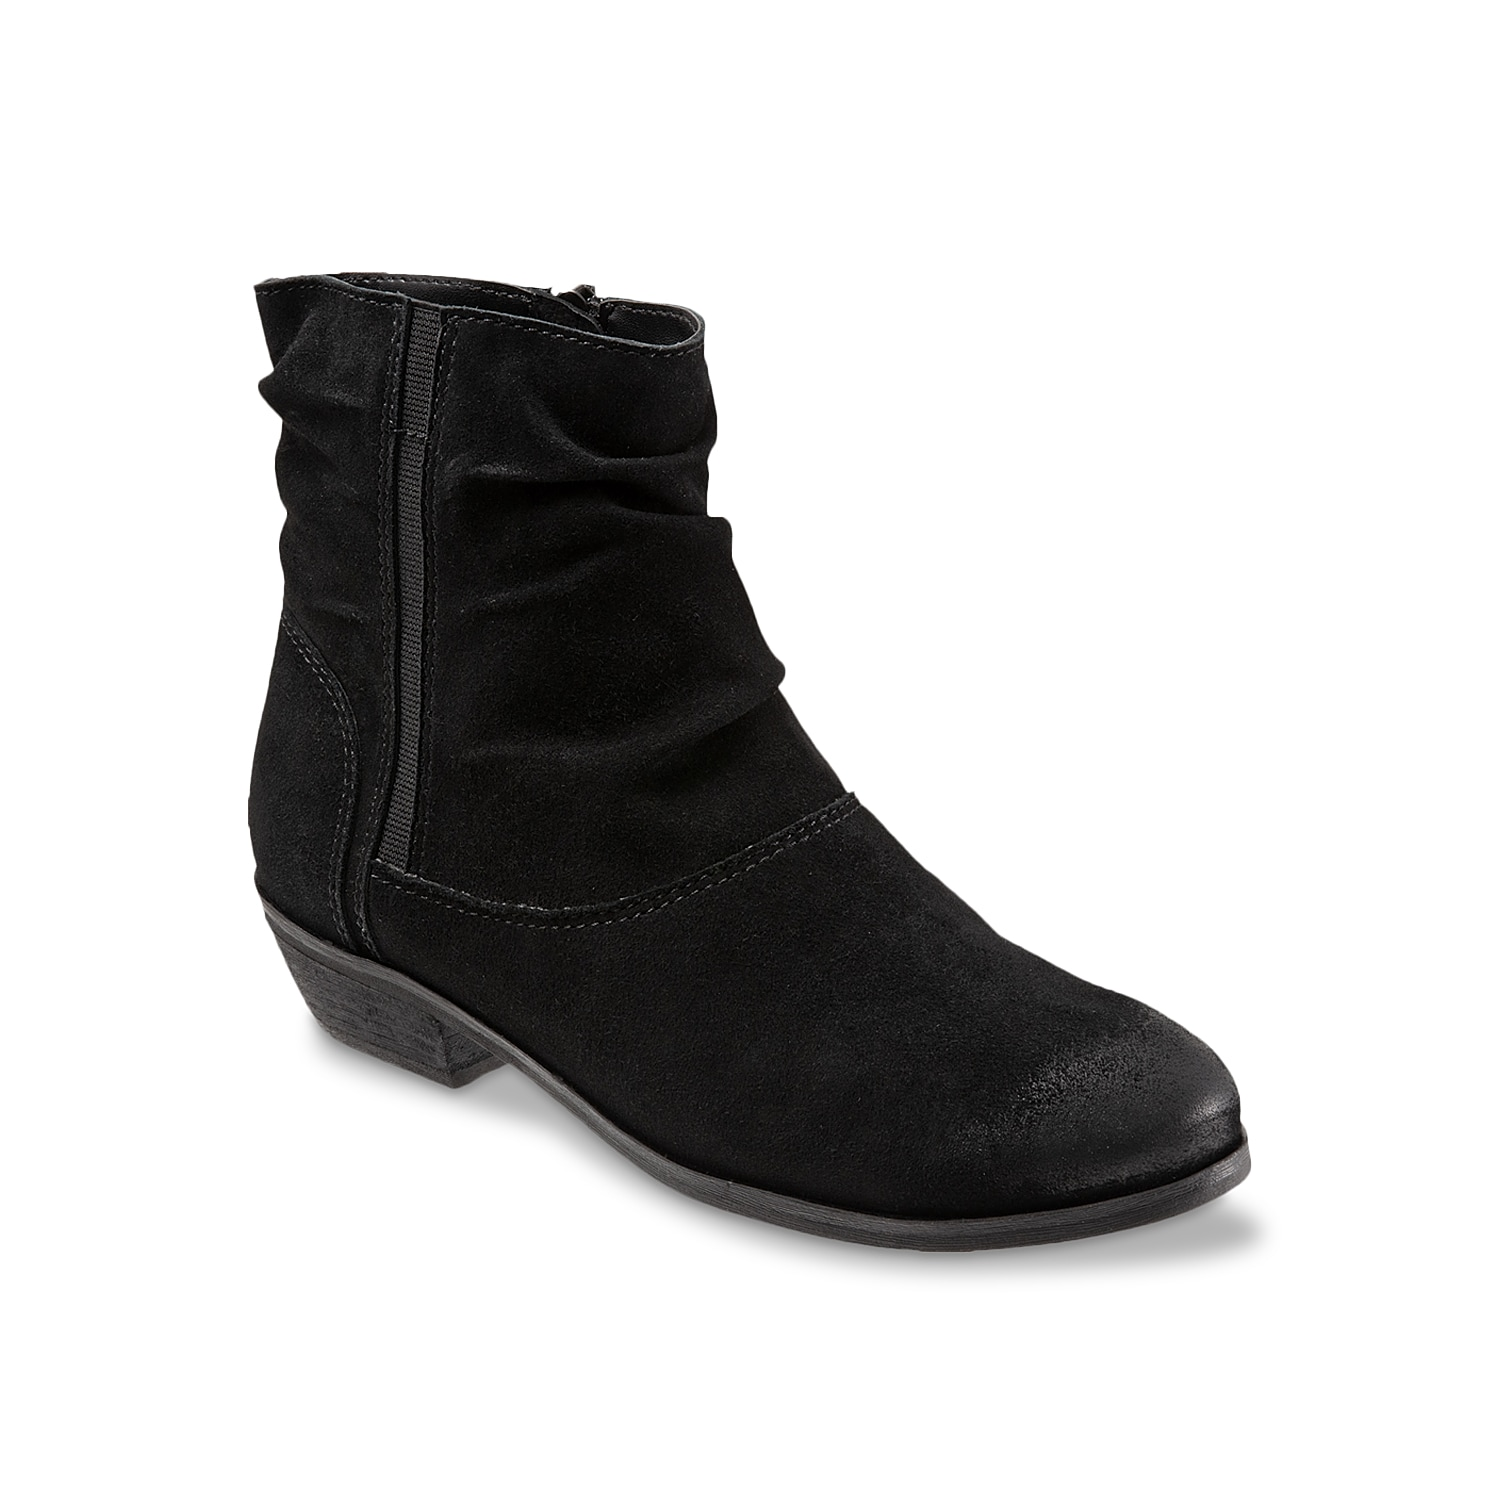 Pull on an ankle boot that will carry you through the changing seasons! The Softwalk Rochelle bootie has a chic ruched vamp and the chunky block heel that creates a solid fashion foundation.